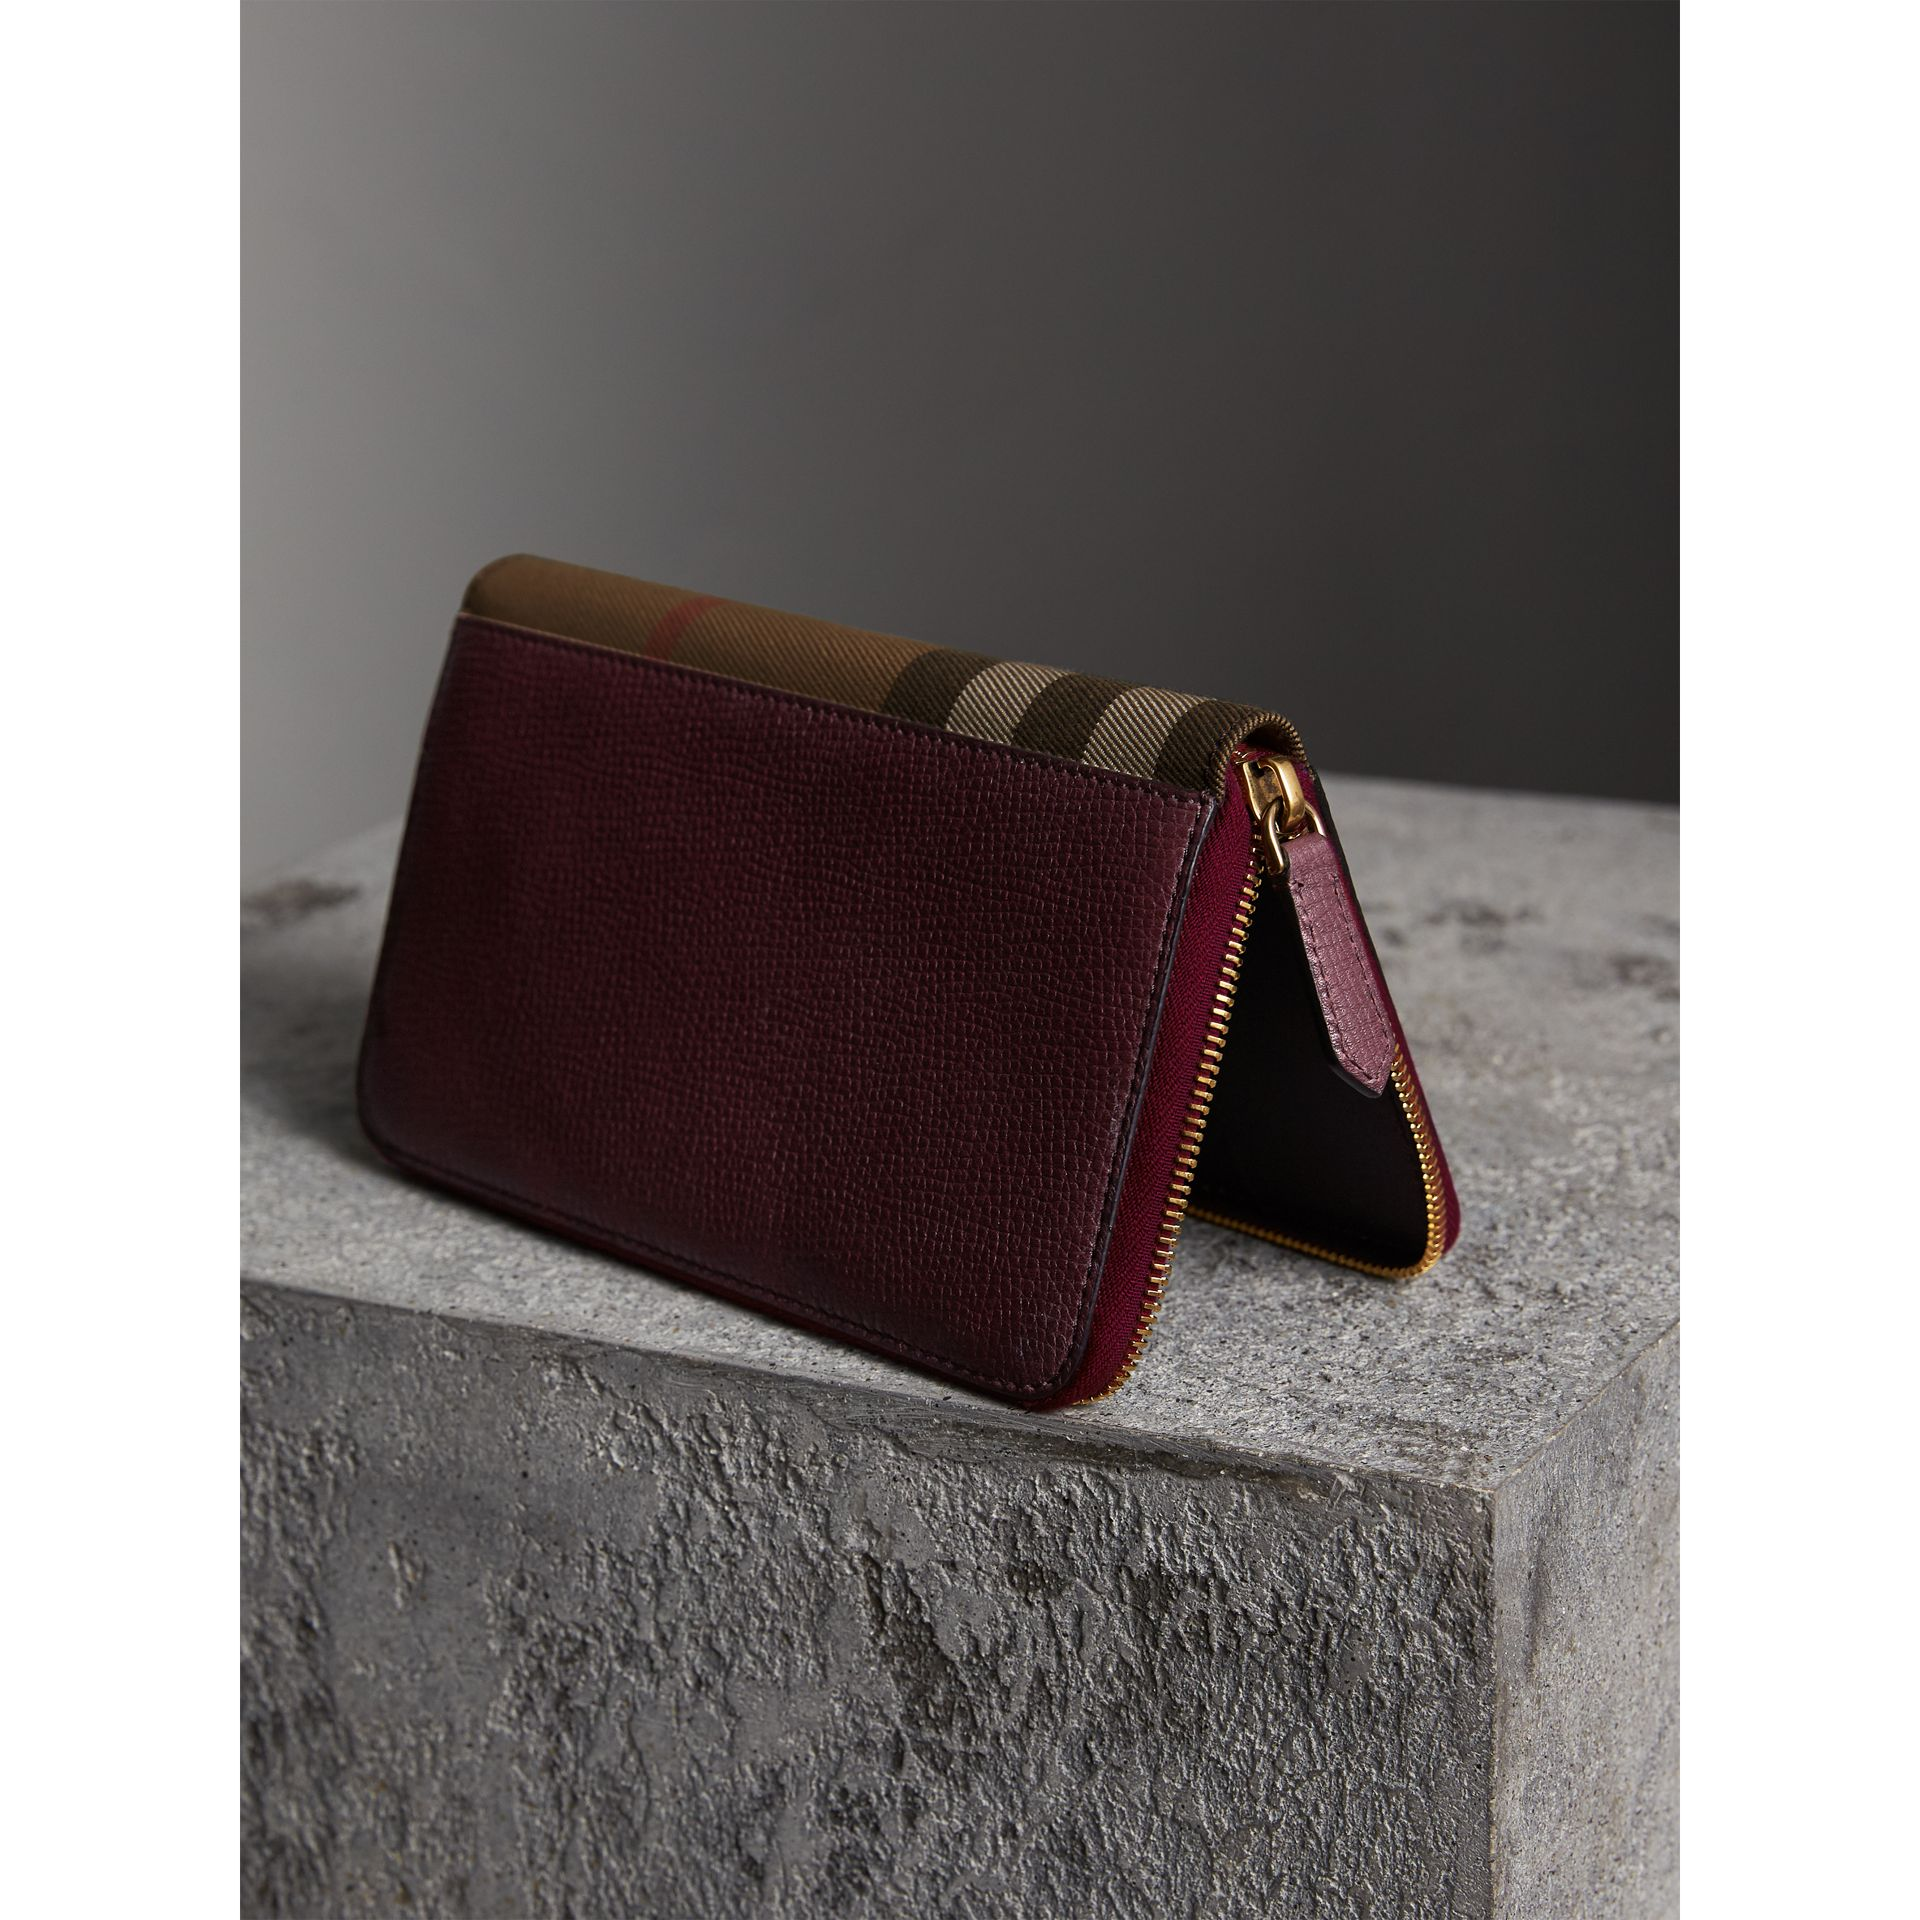 House Check and Grainy Leather Ziparound Wallet in Wine | Burberry United Kingdom - gallery image 3